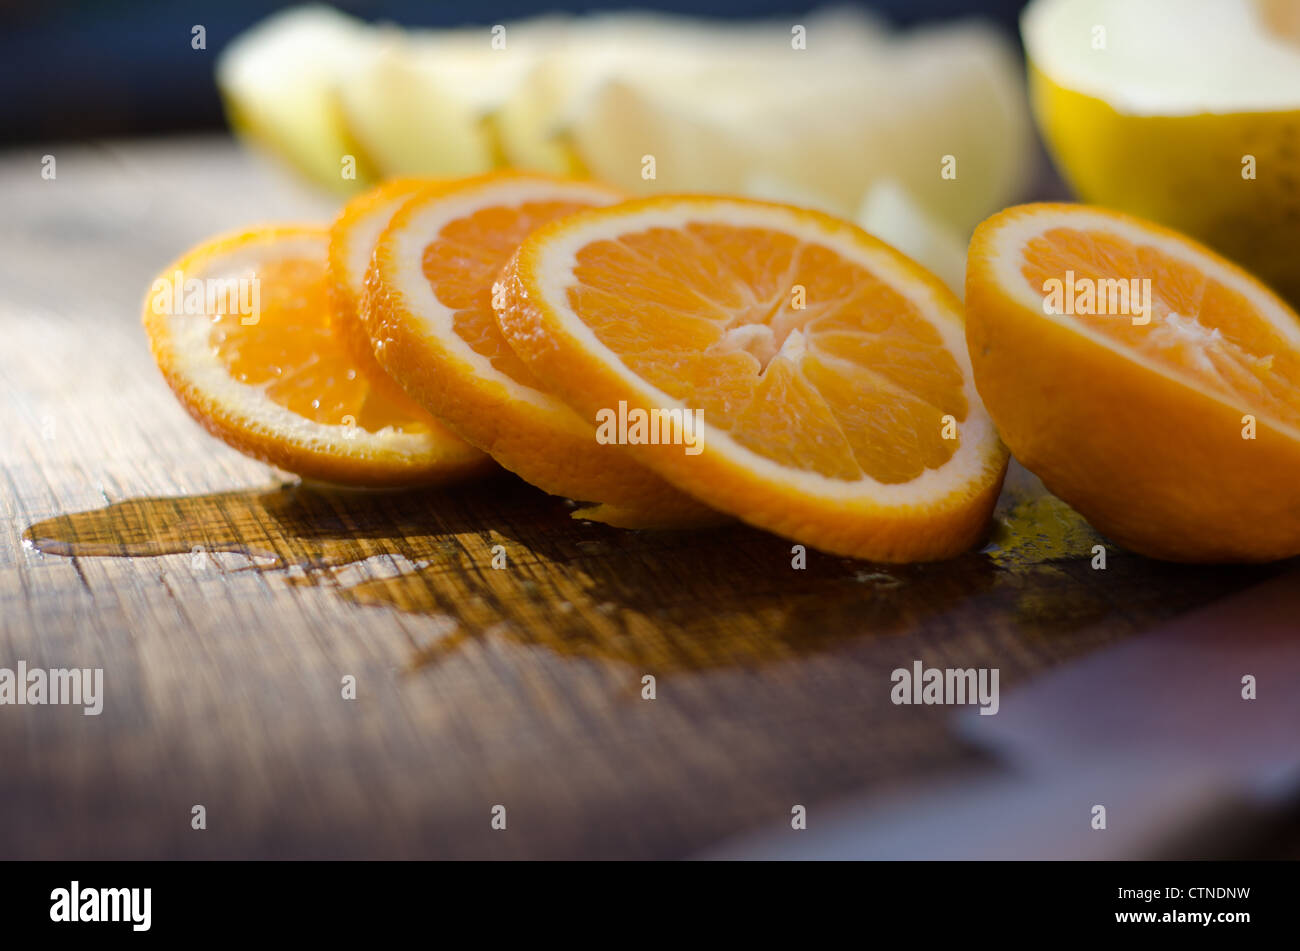 Slices of freshly cut orange on an oak board with out of focus melon in background. - Stock Image